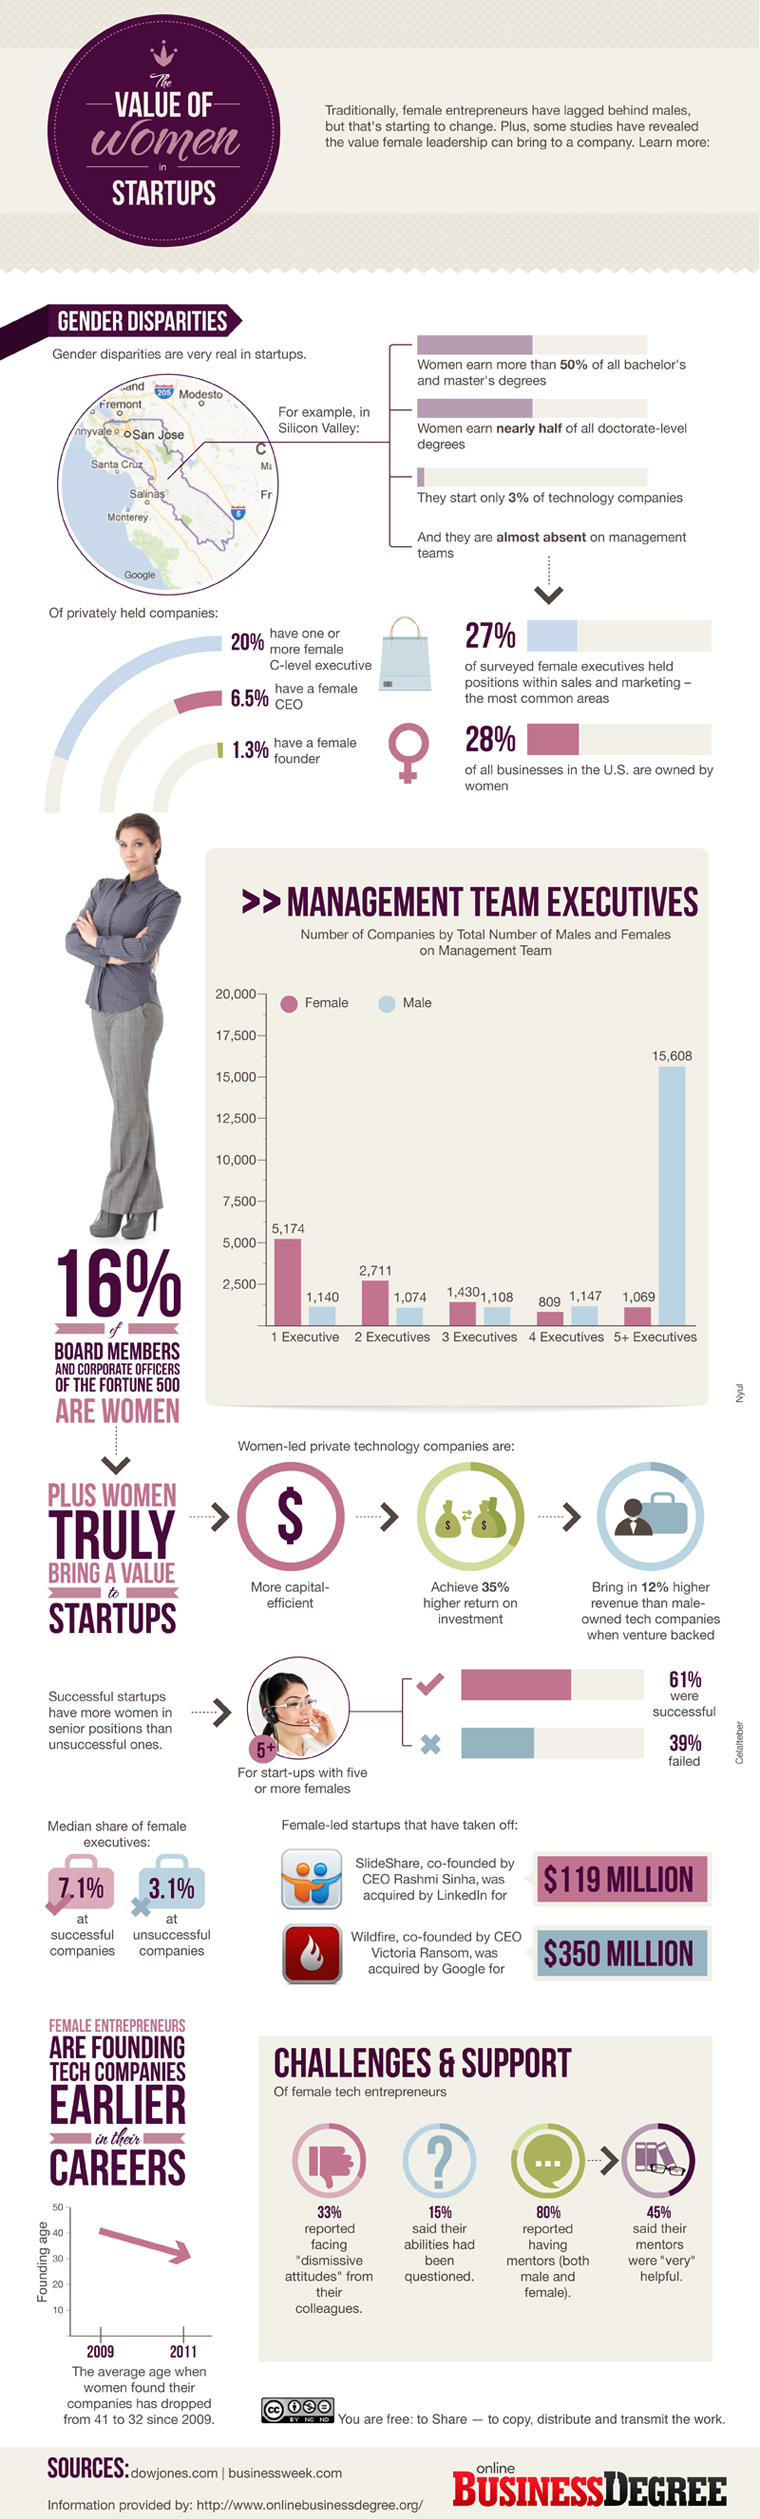 Women in startups infographic